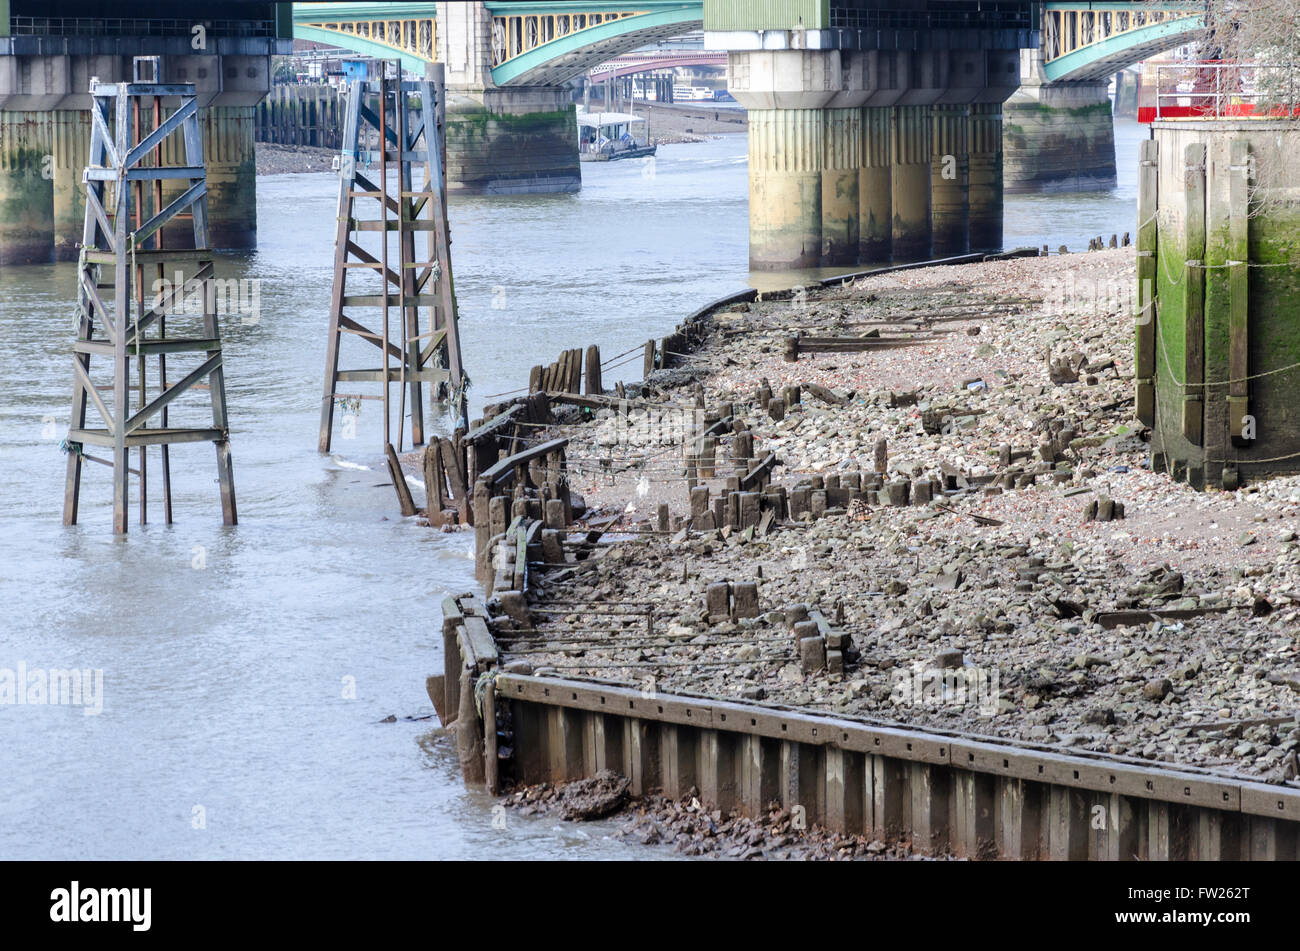 River Thames at low tide, London, UK - Stock Image